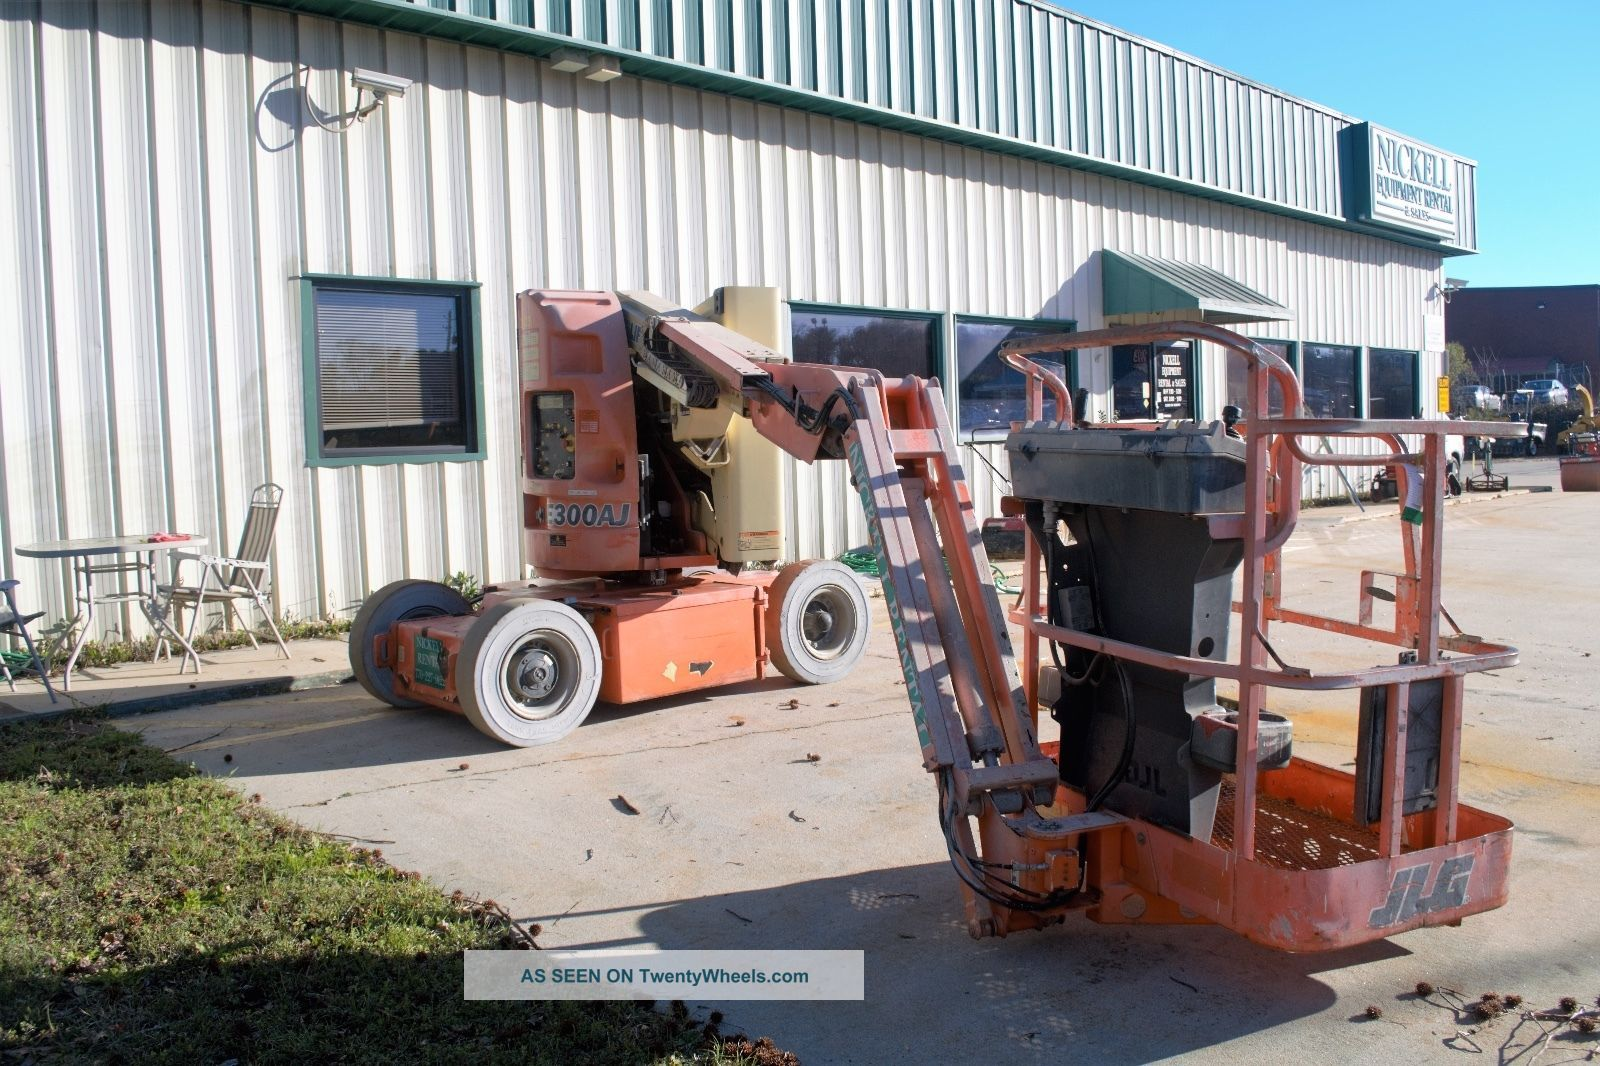 Jlg E300j Electric Knuckle Boom Lift Scissor & Boom Lifts photo